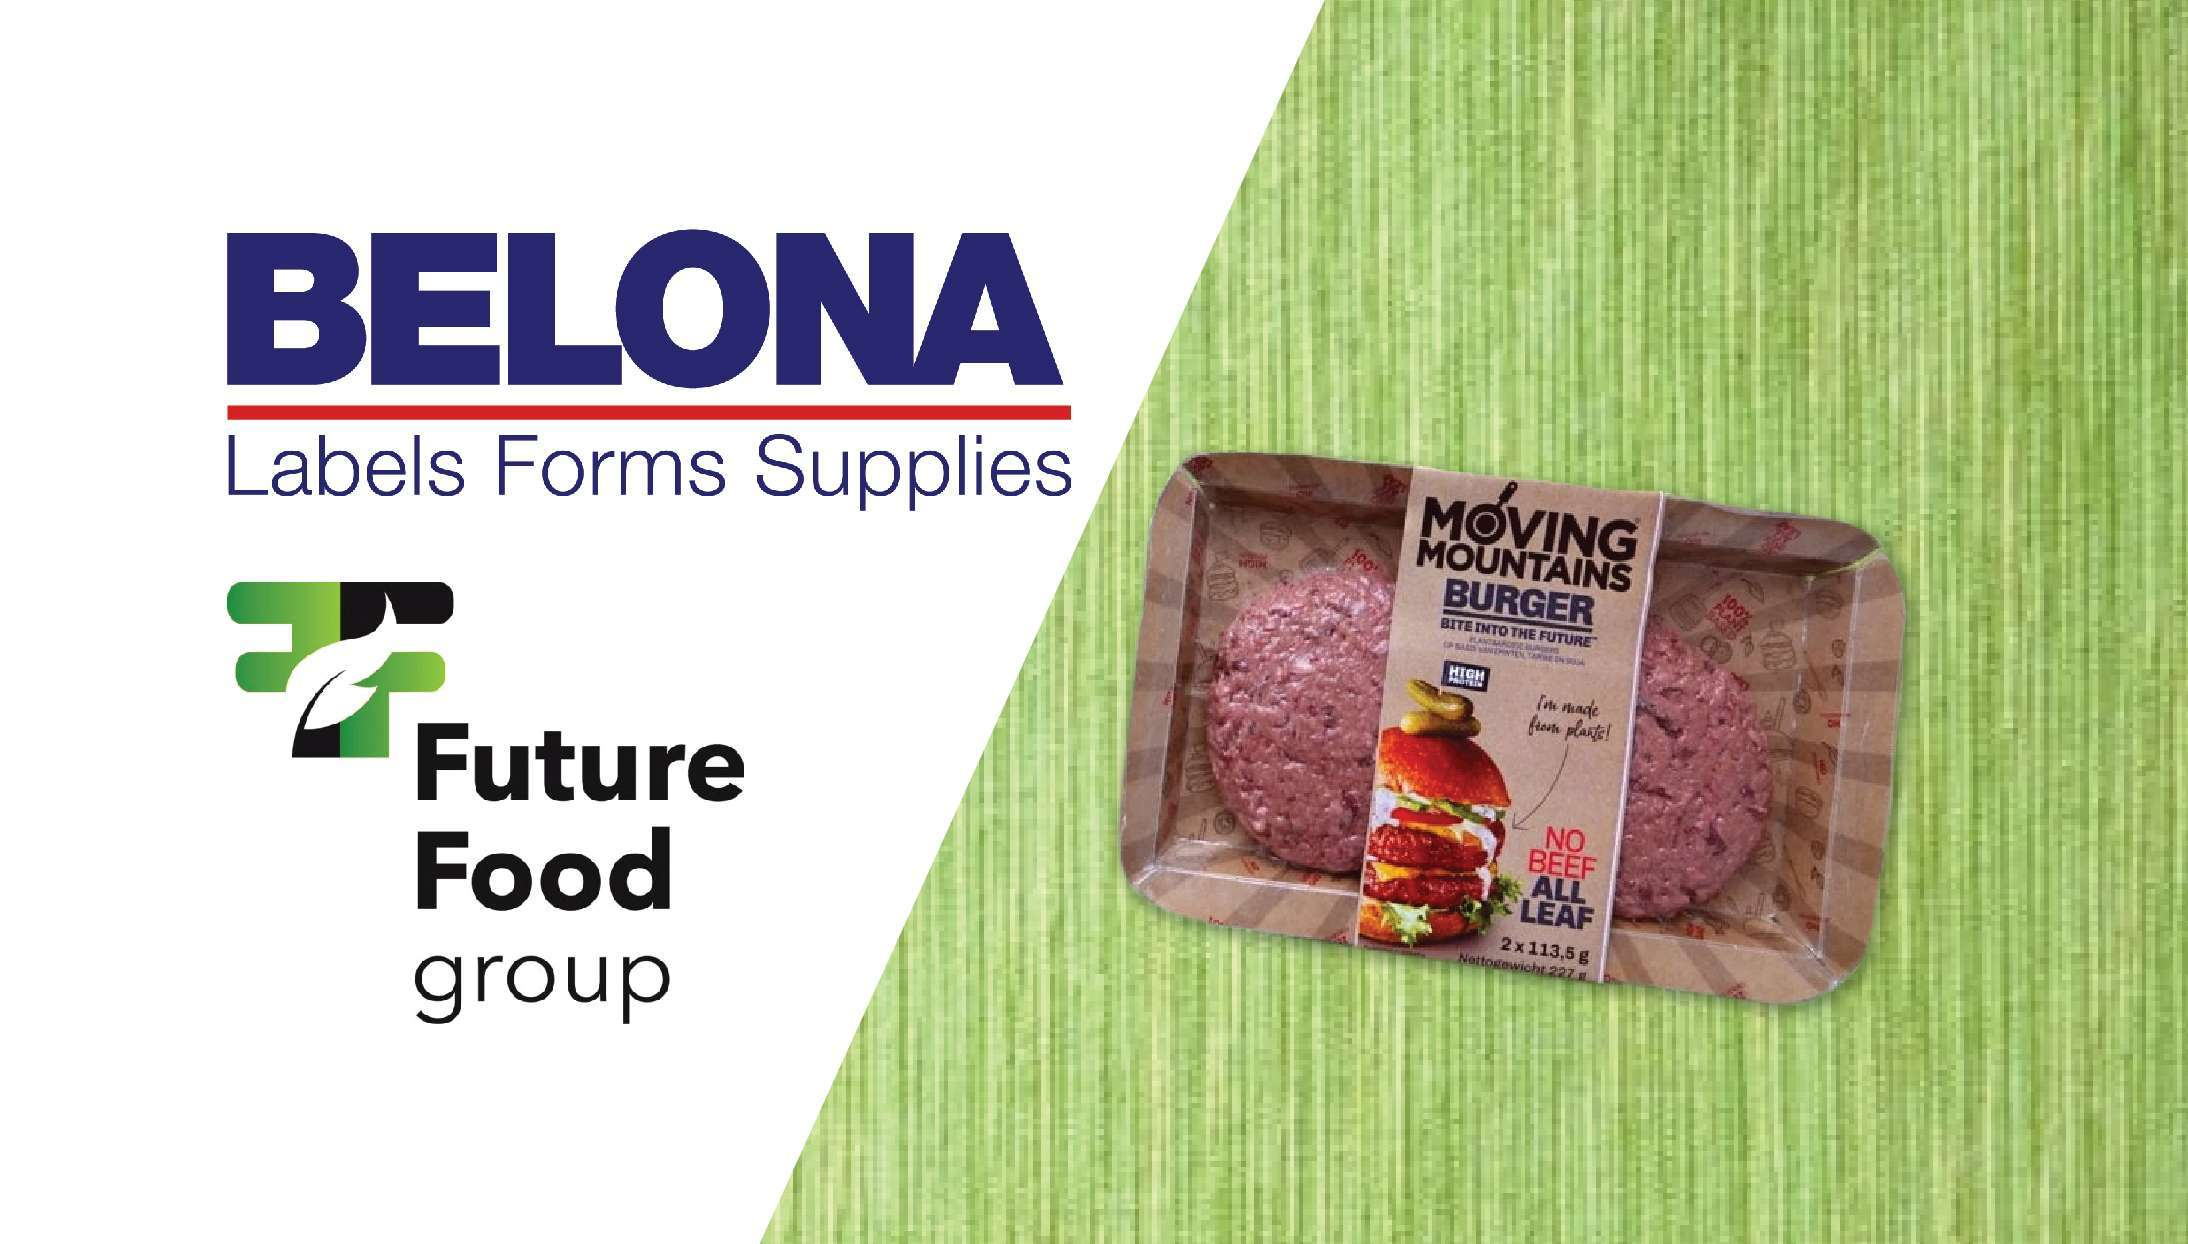 Future Food Group and Ravenwood labels from Belona